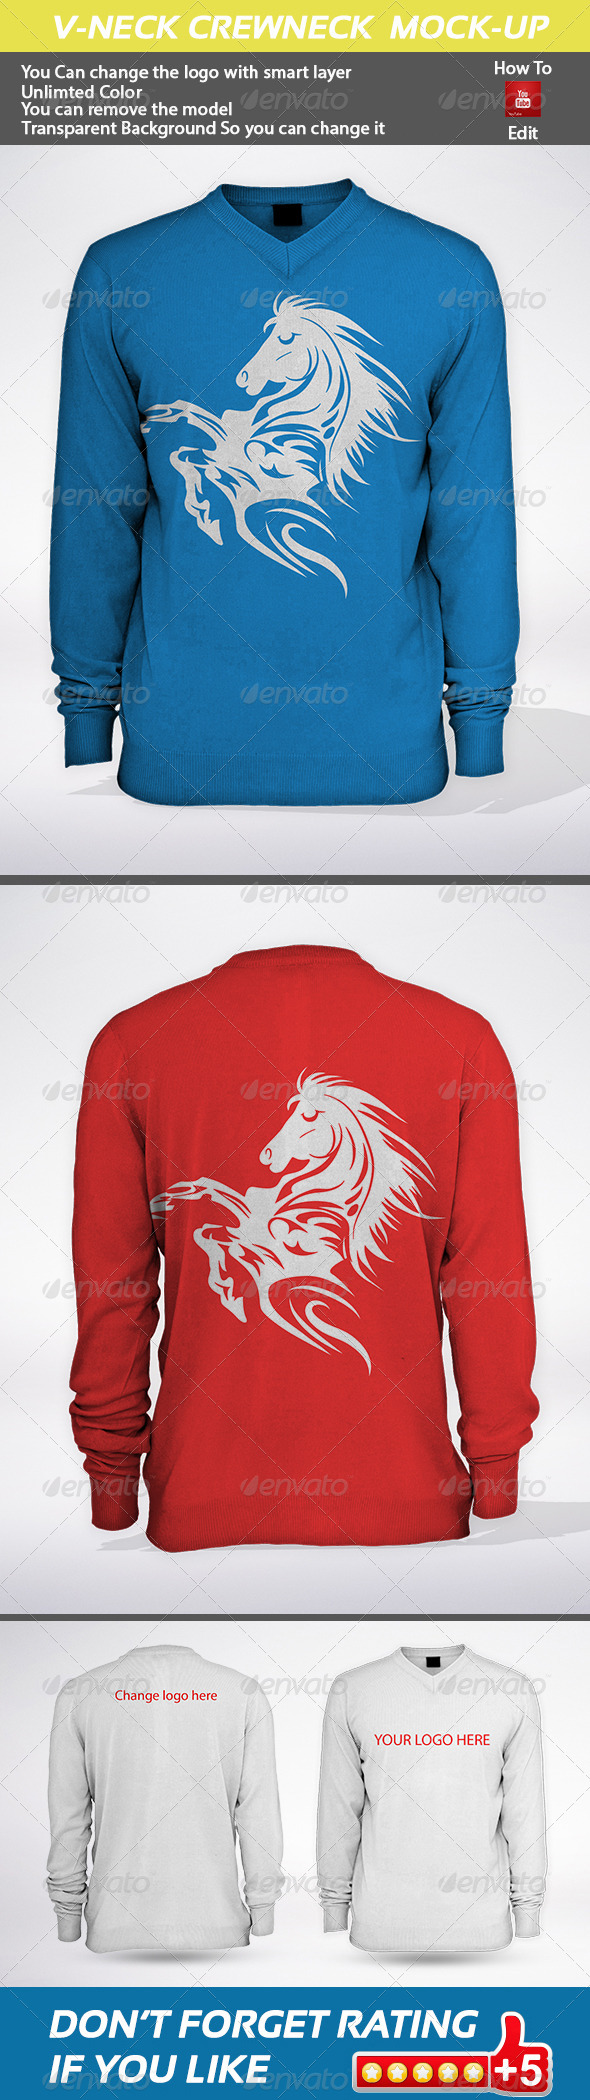 GraphicRiver V-neck Crewneck Mock-Up 5934957